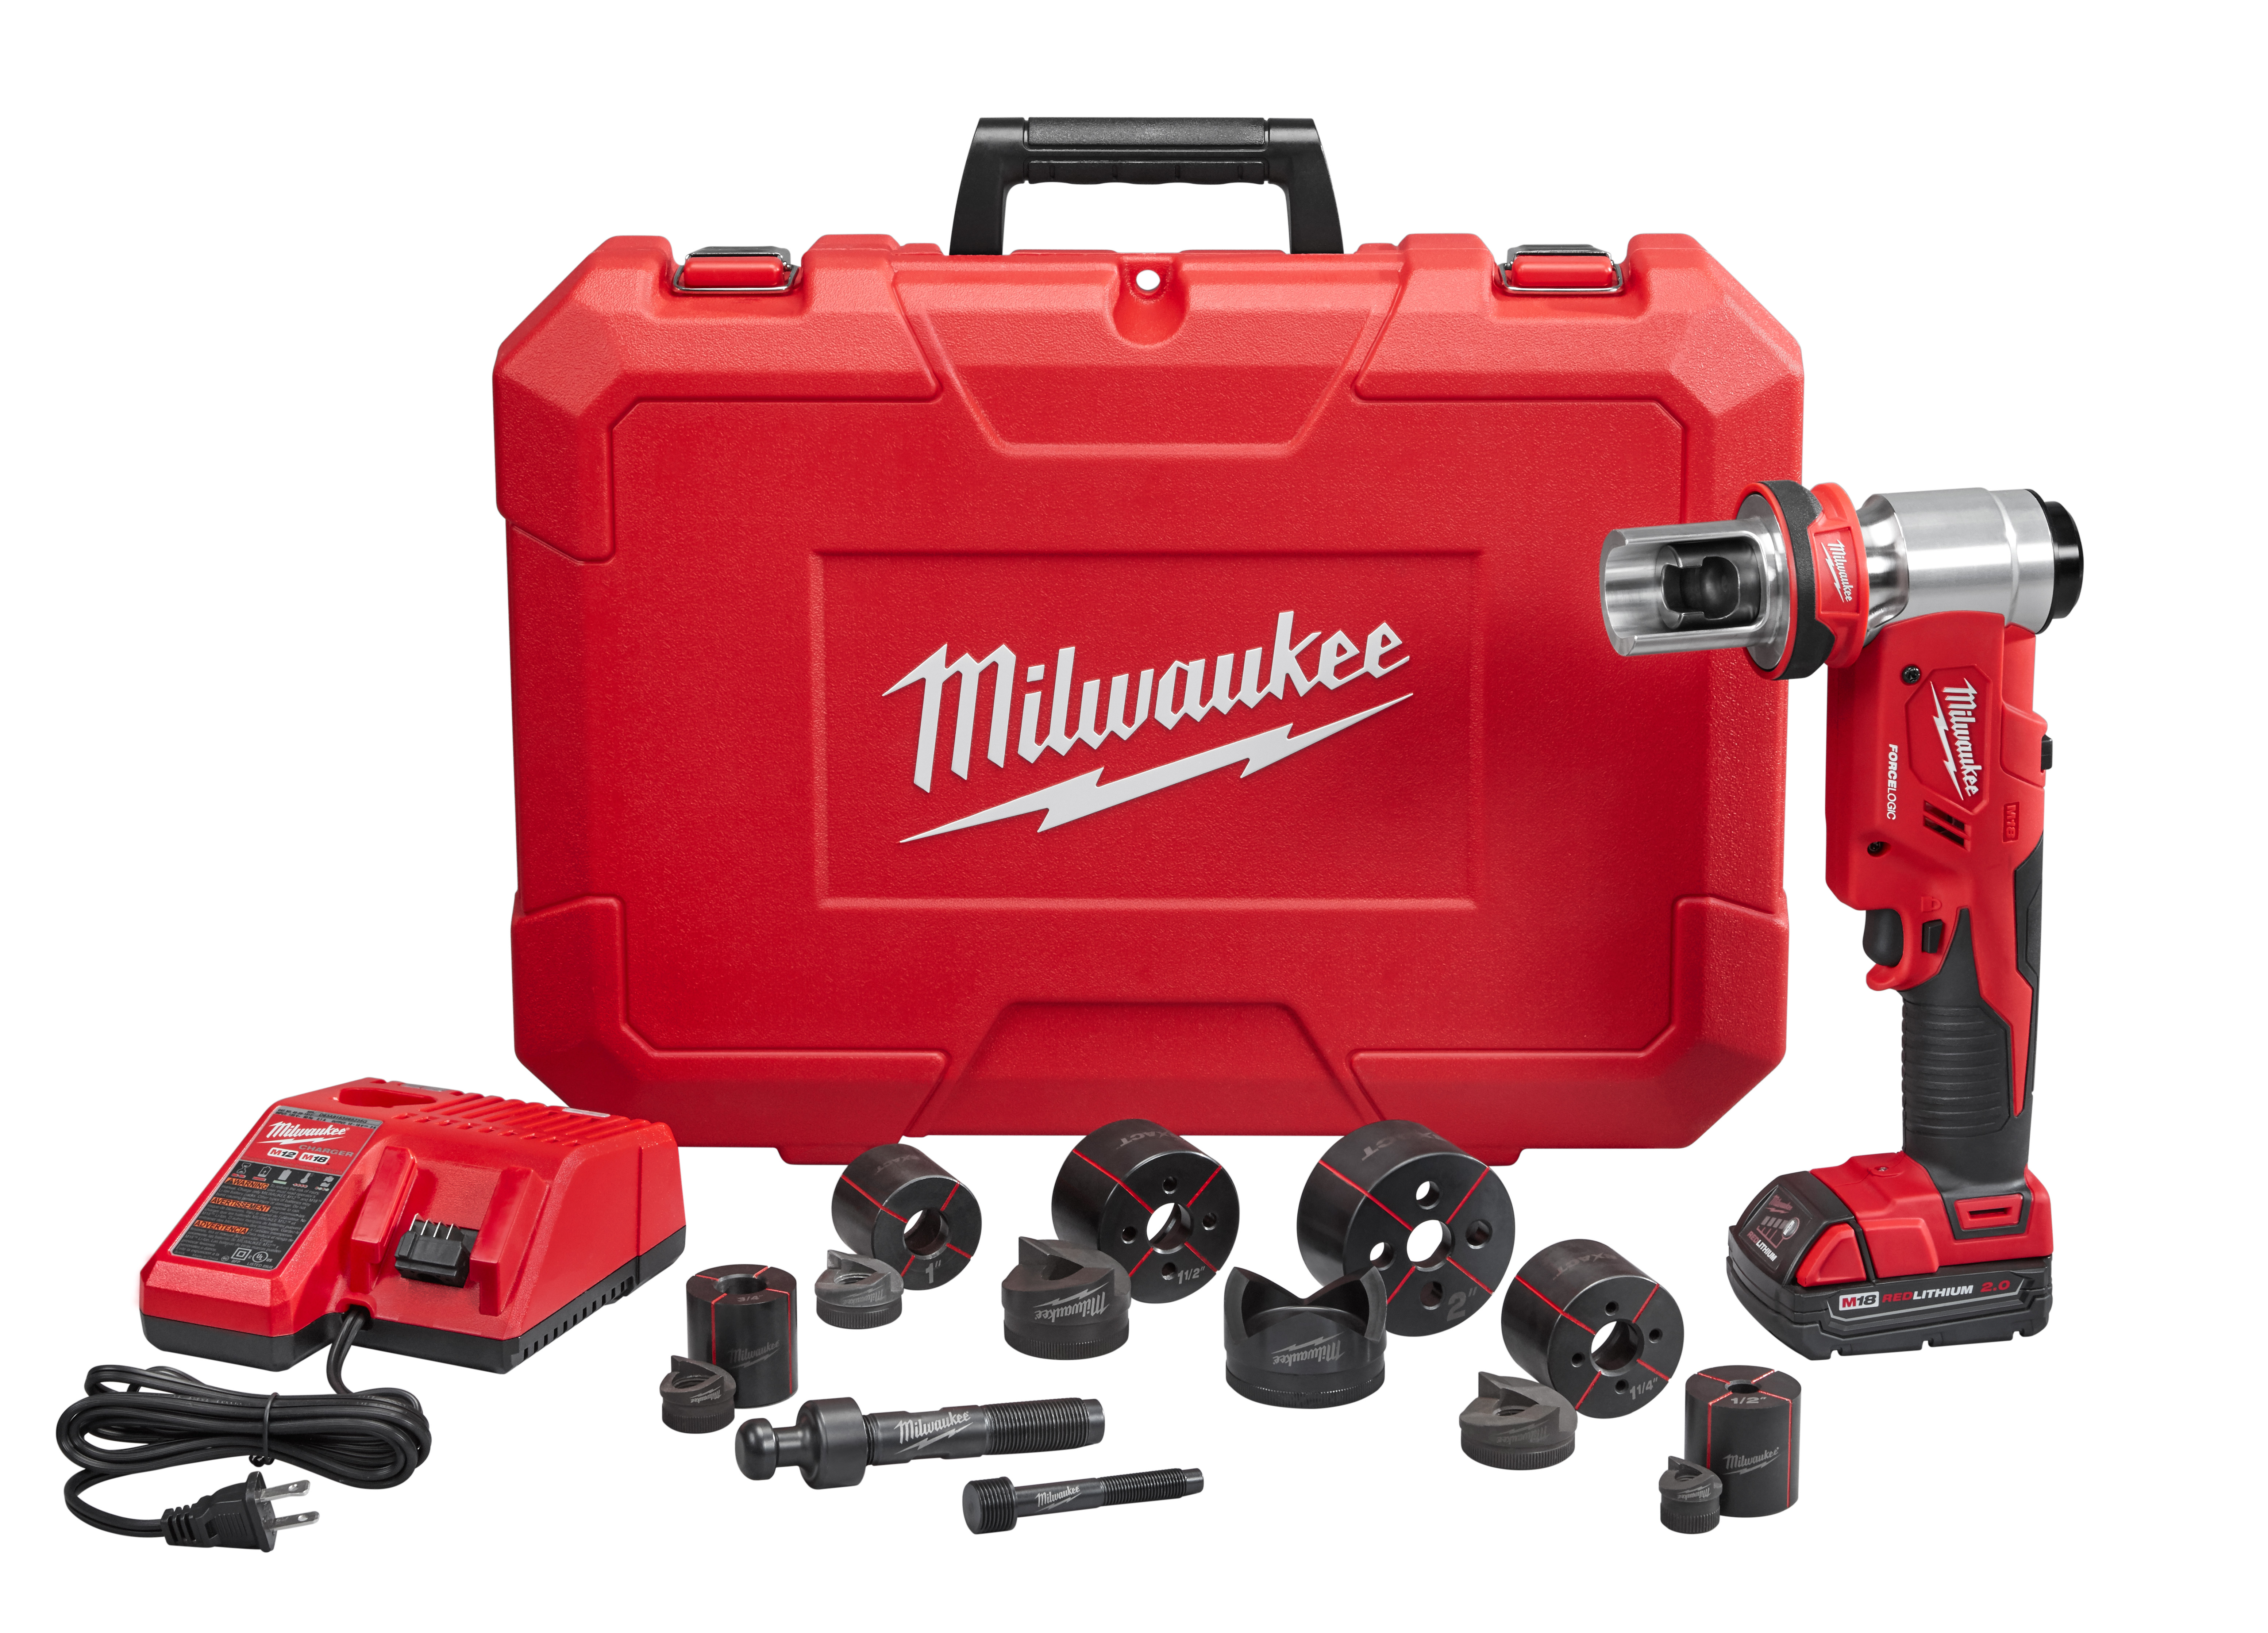 Milwaukee® M18™ 2677-21 FORCE LOGIC™ Knockout Tool Kit, 1/2 to 4 in Mild Steel Max Cutting, 11.7 in OAL